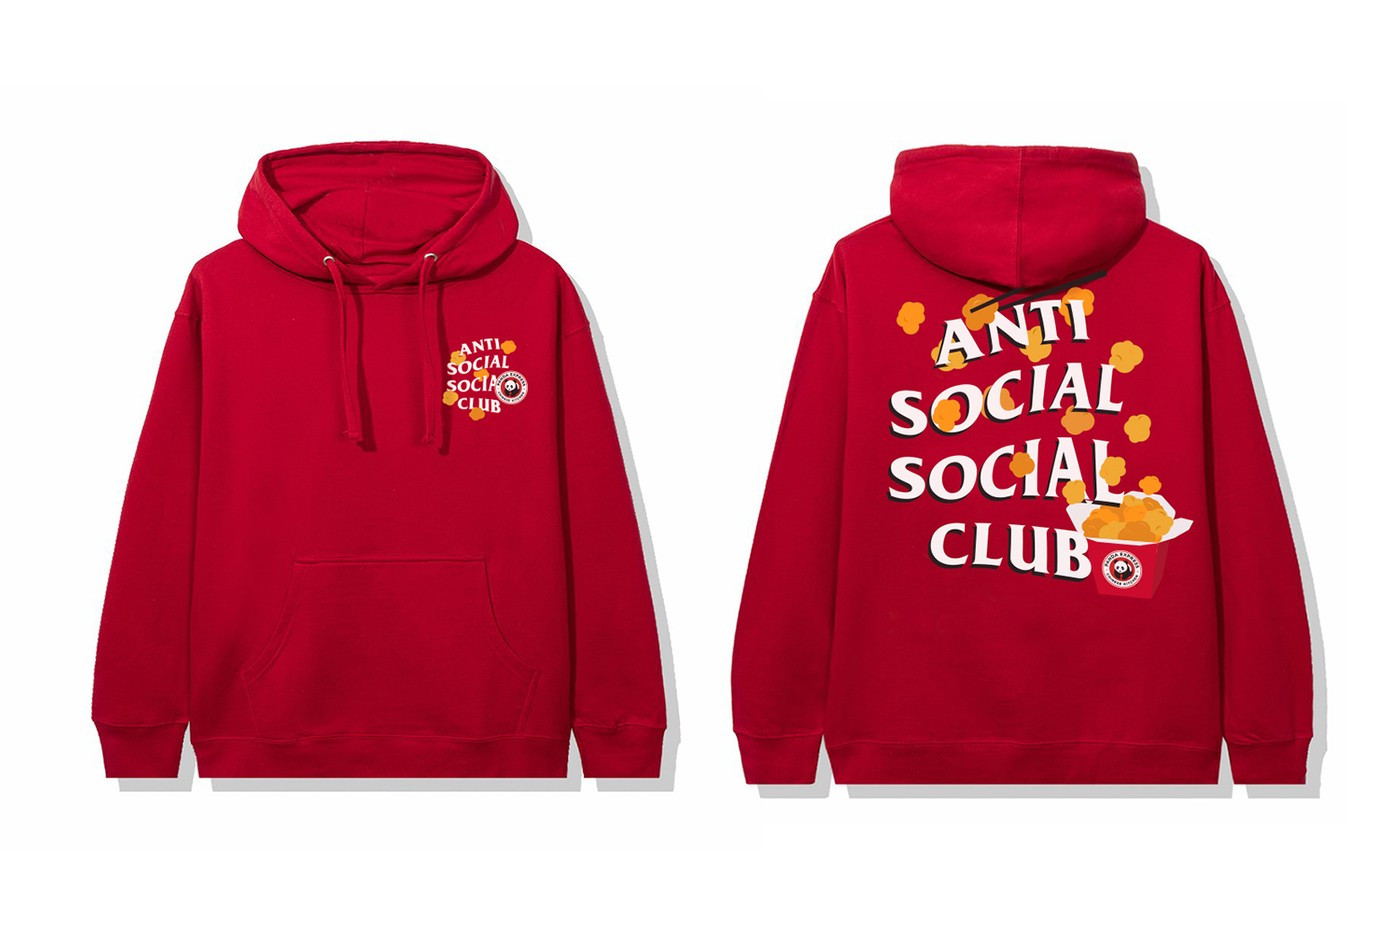 Panda Express x Anti Social Social Club